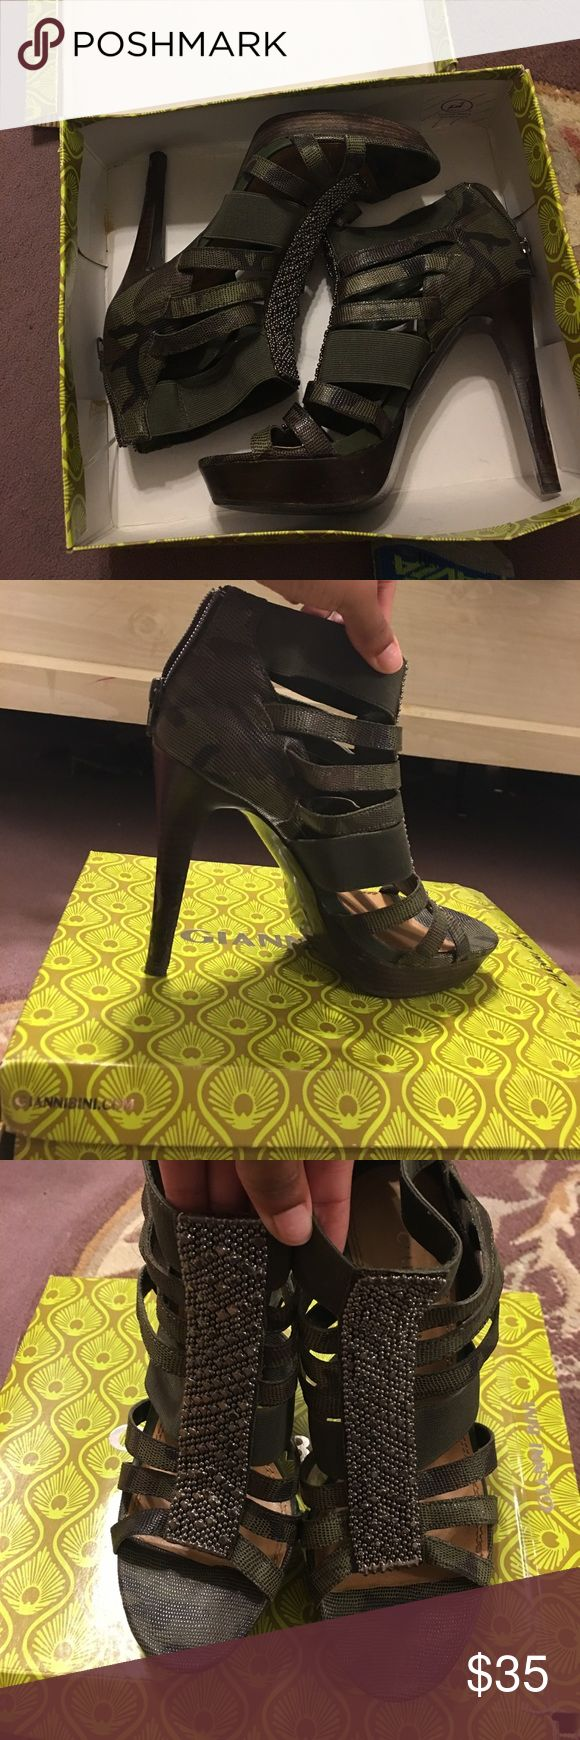 Gianni Bini Heels Cute army green open toe heels by Gianni Bini. Gently used with plastic still on the back of the heel. (Can peeled off if you would like) Gianni Bini Shoes Heels